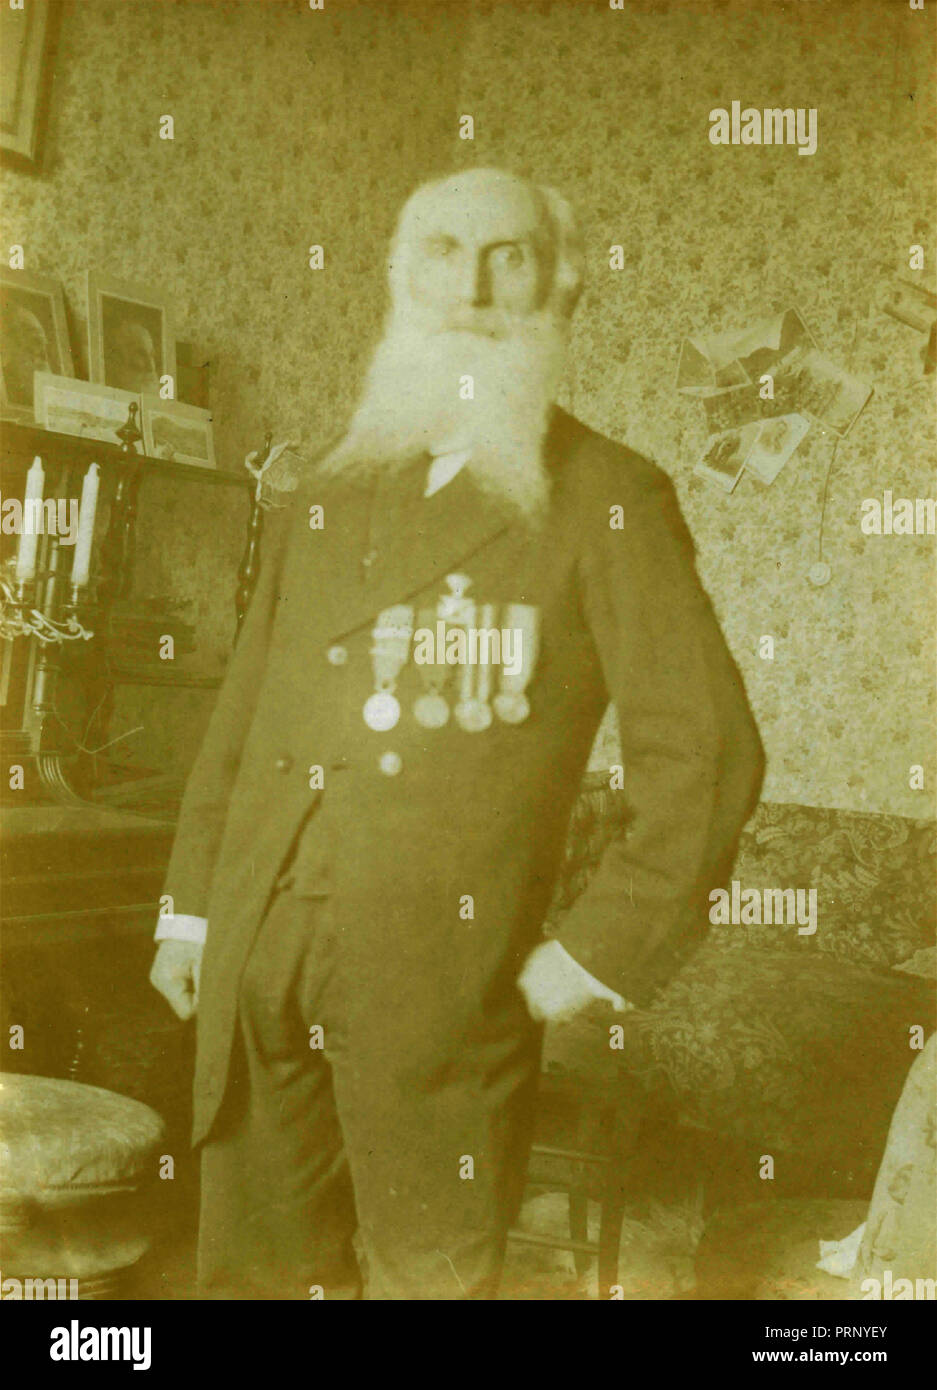 Veteran old man with long beard with awards and decoration, 1910s - Stock Image